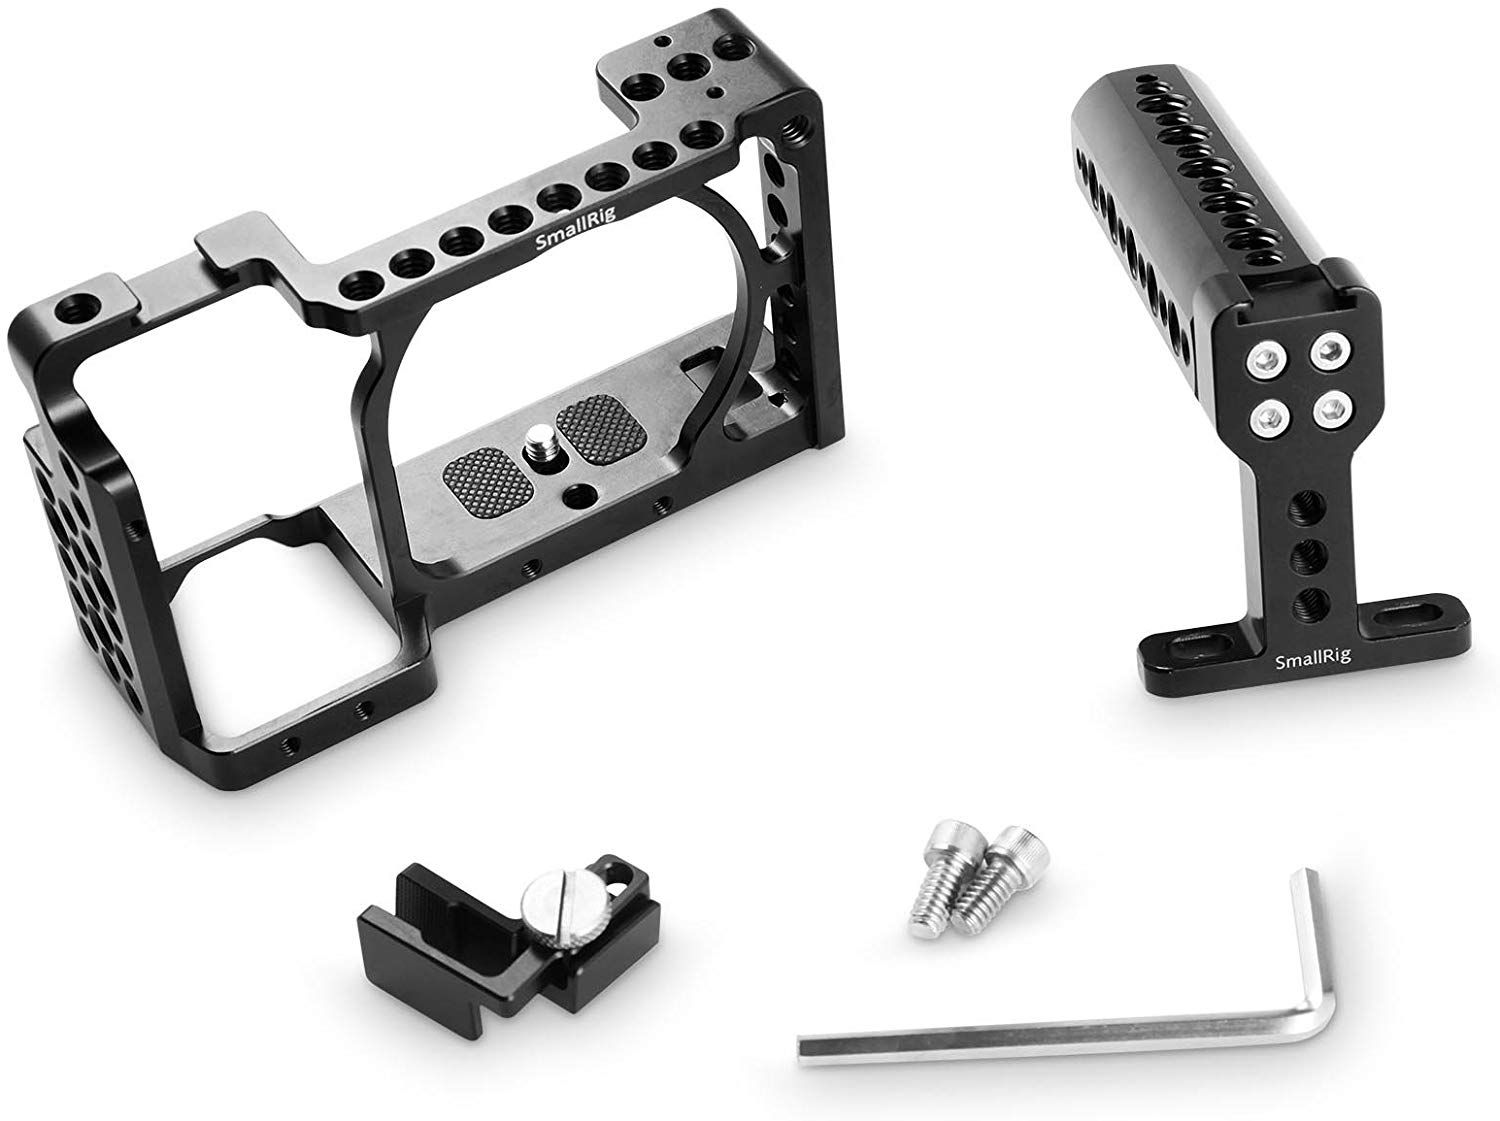 SMALLRIG Cage Kit for Sony A6000 A6300 NEX7 Camera with Cage, Handle, HDMI Clamp - 1921